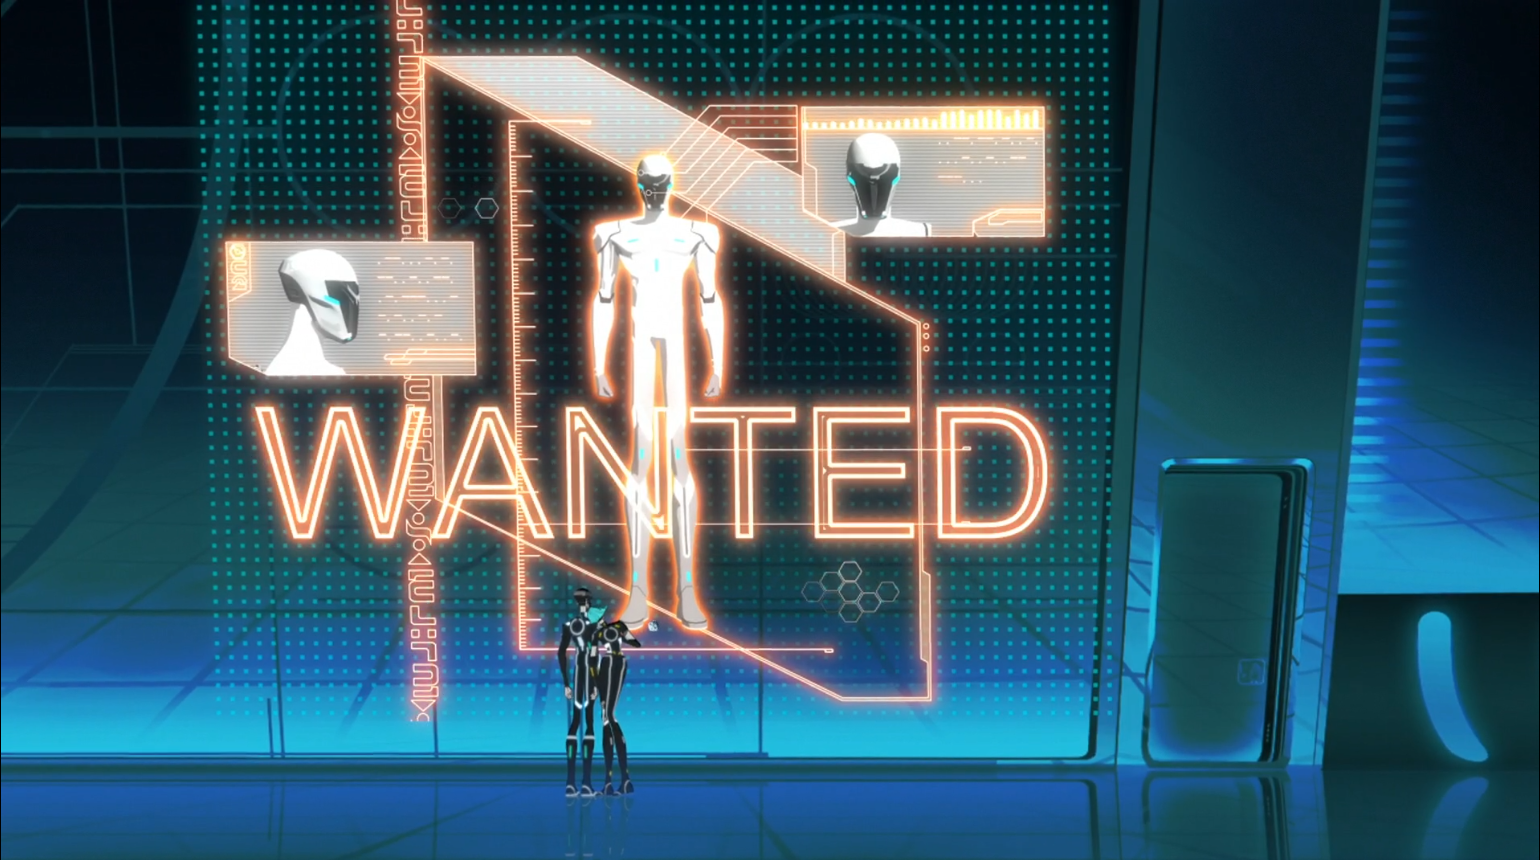 Tron Uprising - The Renegade wanted